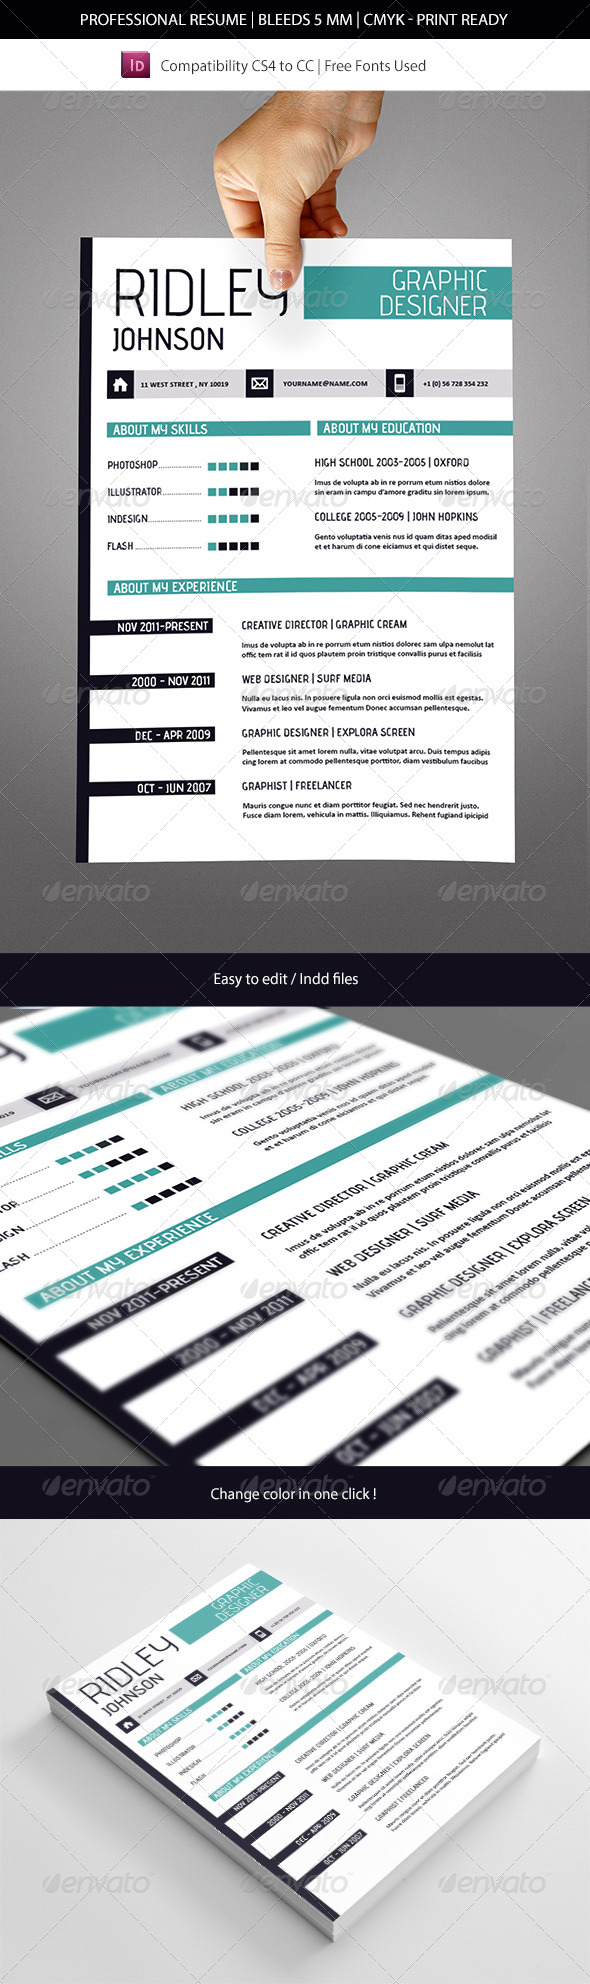 Indesign Resume Graphics Designs  Templates From Graphicriver